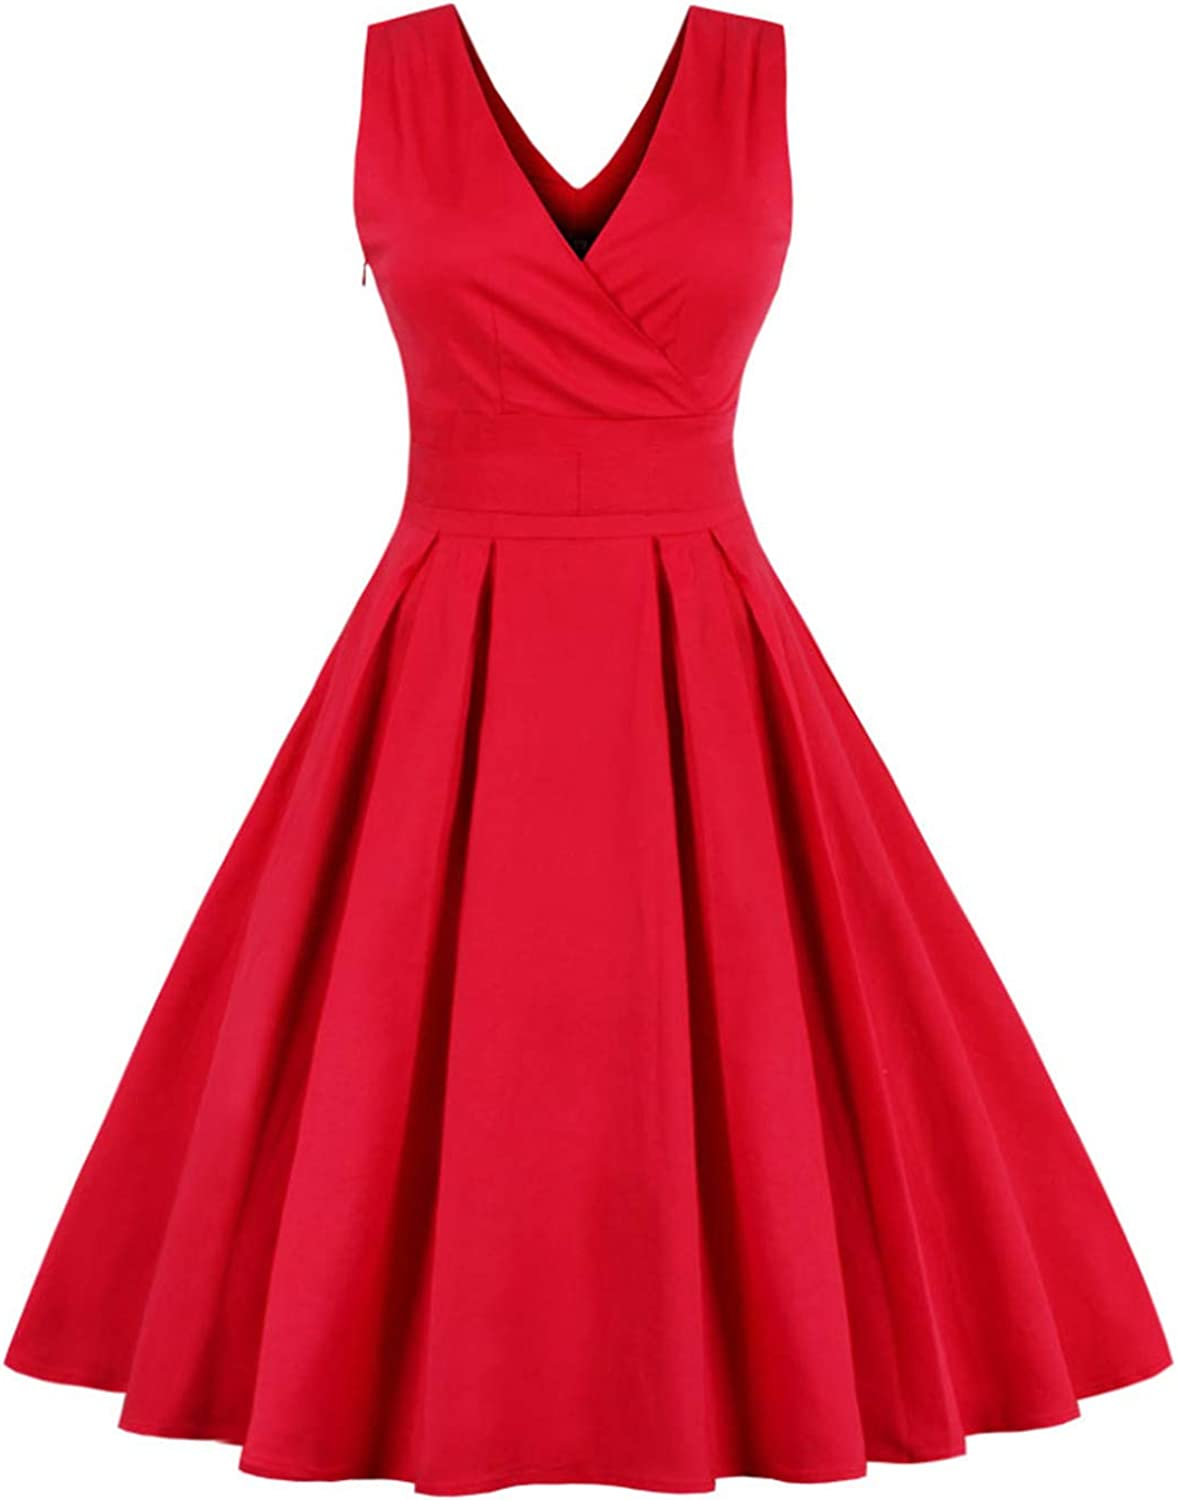 Light bluee Red Pleated Plain Dress Women V Neck Party Dress Summer Dresses